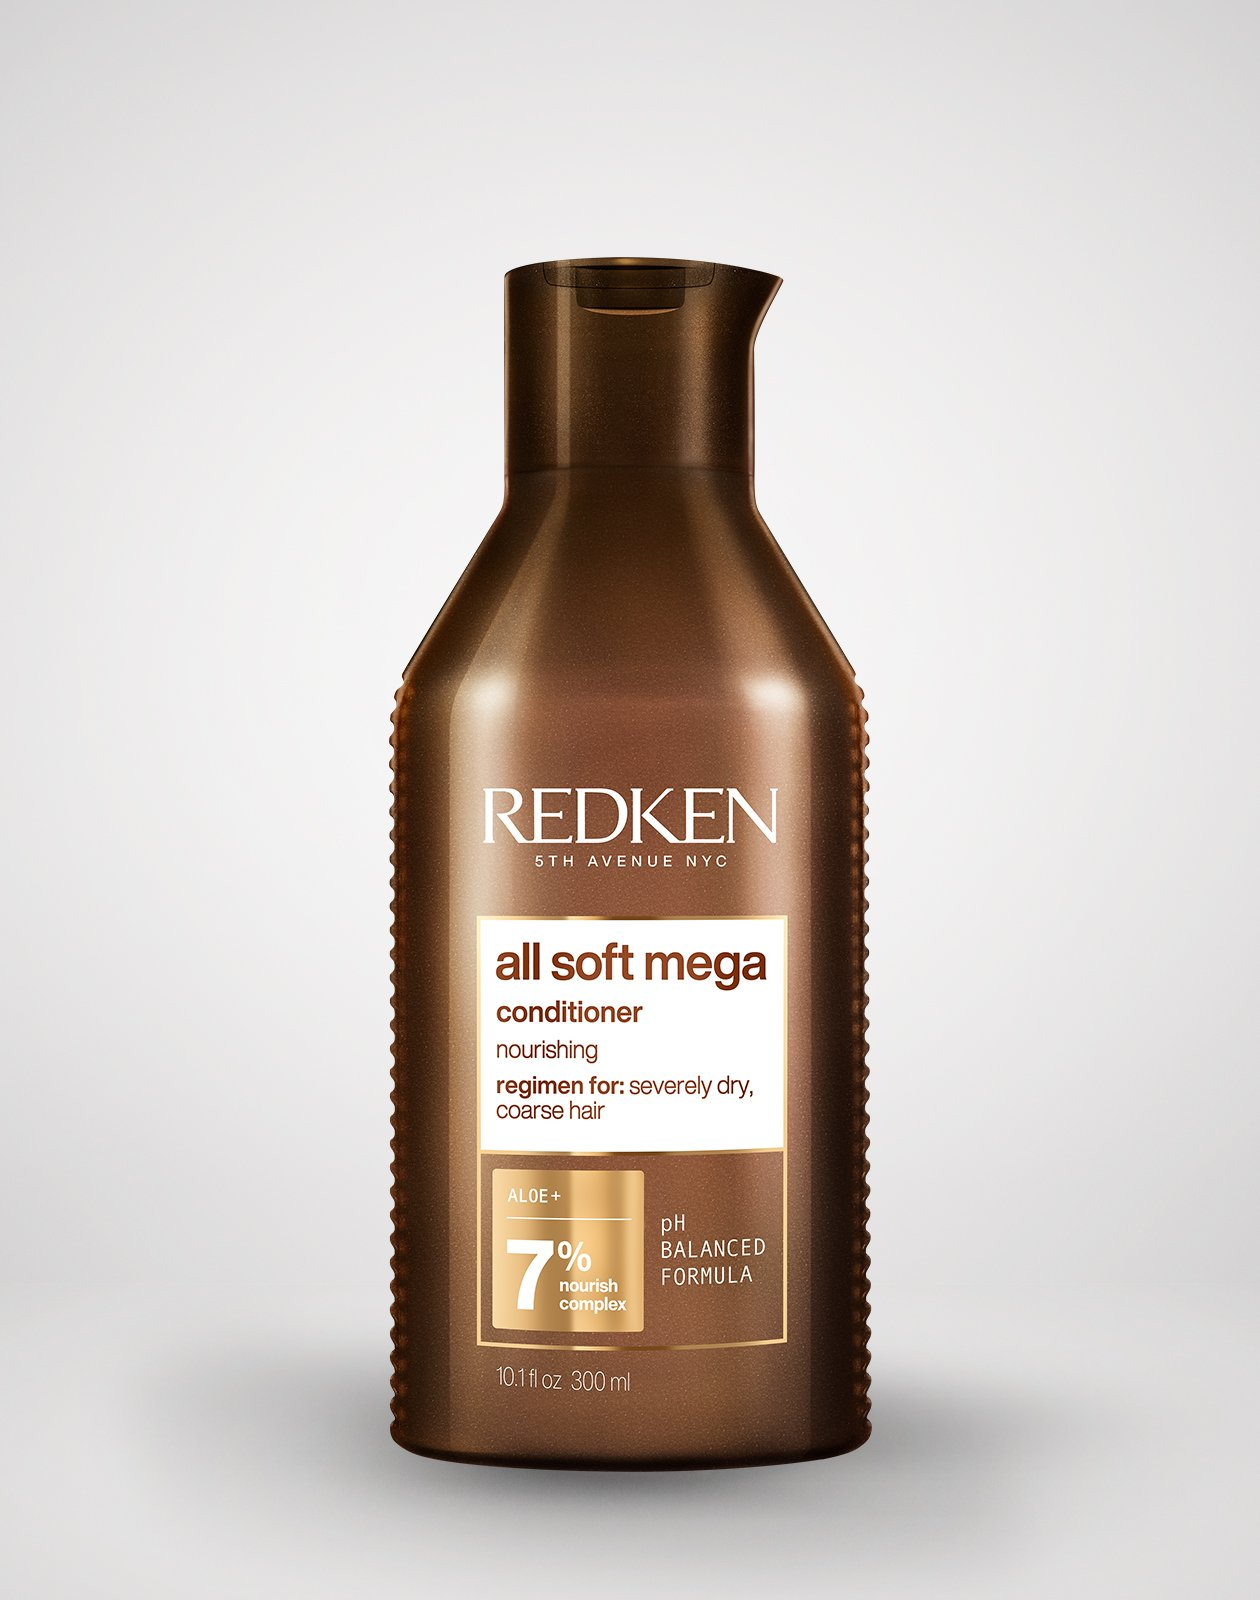 Redken All Soft Mega conditioner